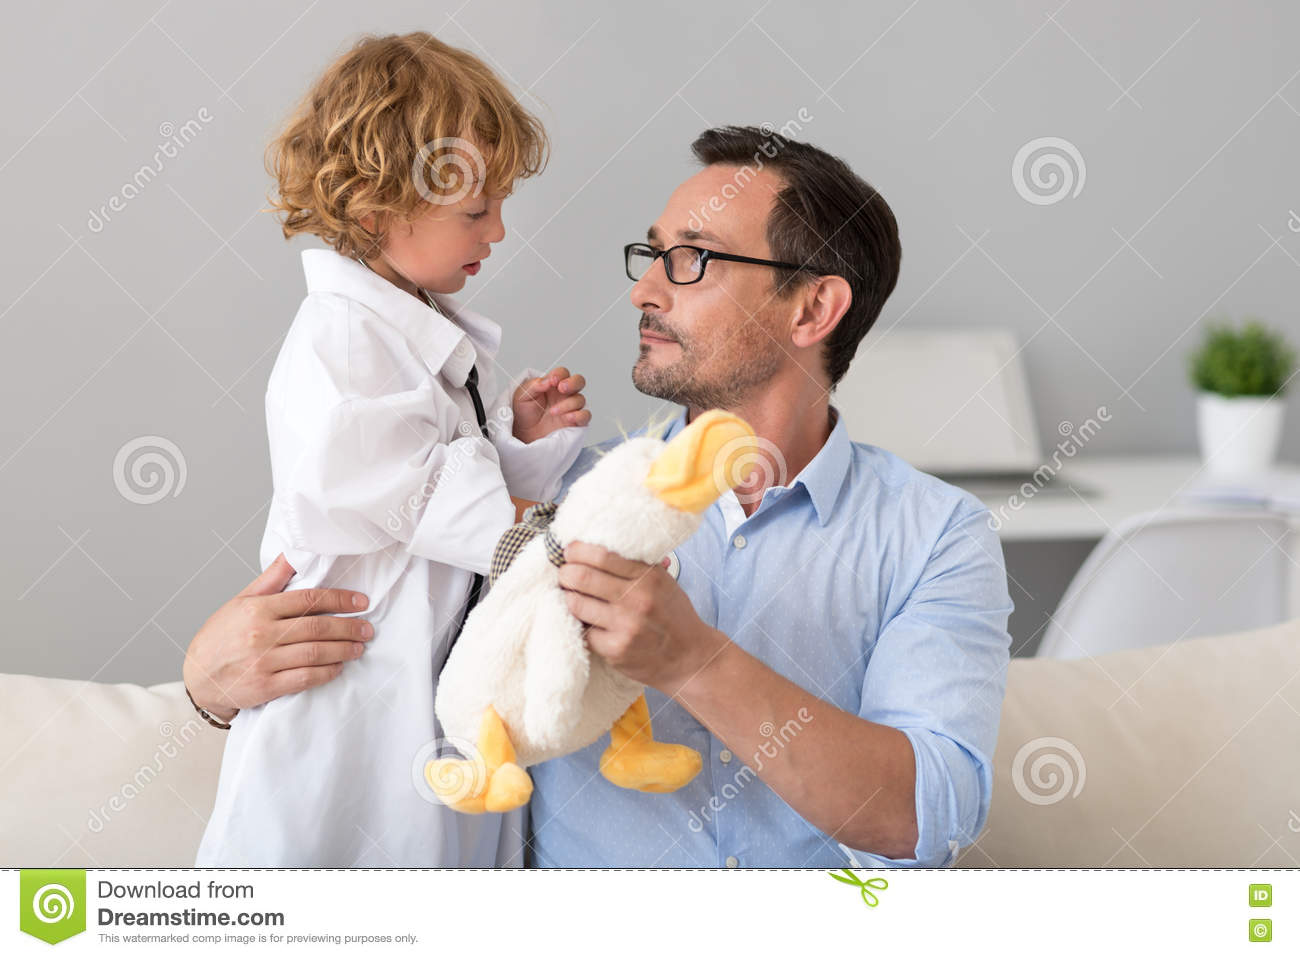 Man Giving Toy To His Little Doctor Stock Image - Image of care ...